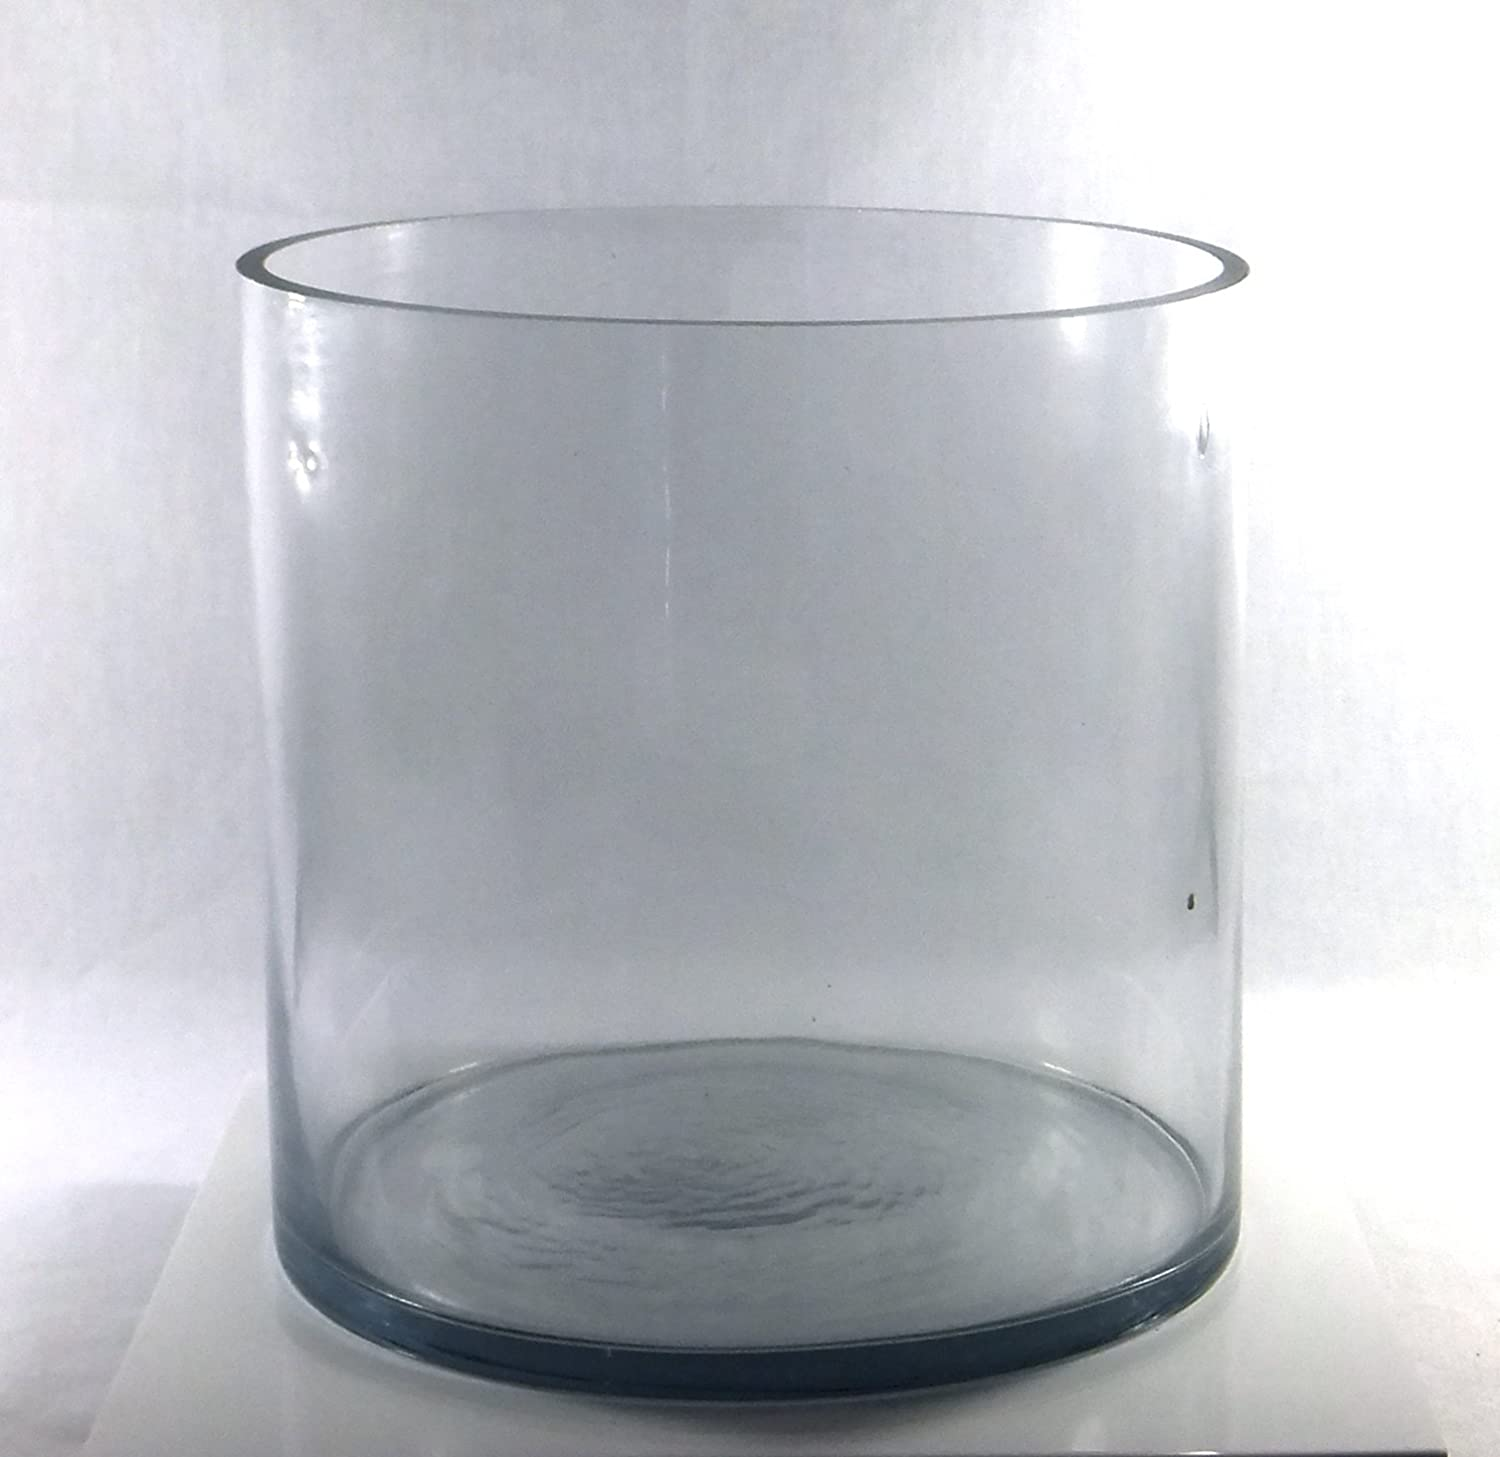 Amazon 8 inch round large glass vase 8 clear cylinder amazon 8 inch round large glass vase 8 clear cylinder oversize centerpiece 8x8 candleholder home kitchen reviewsmspy